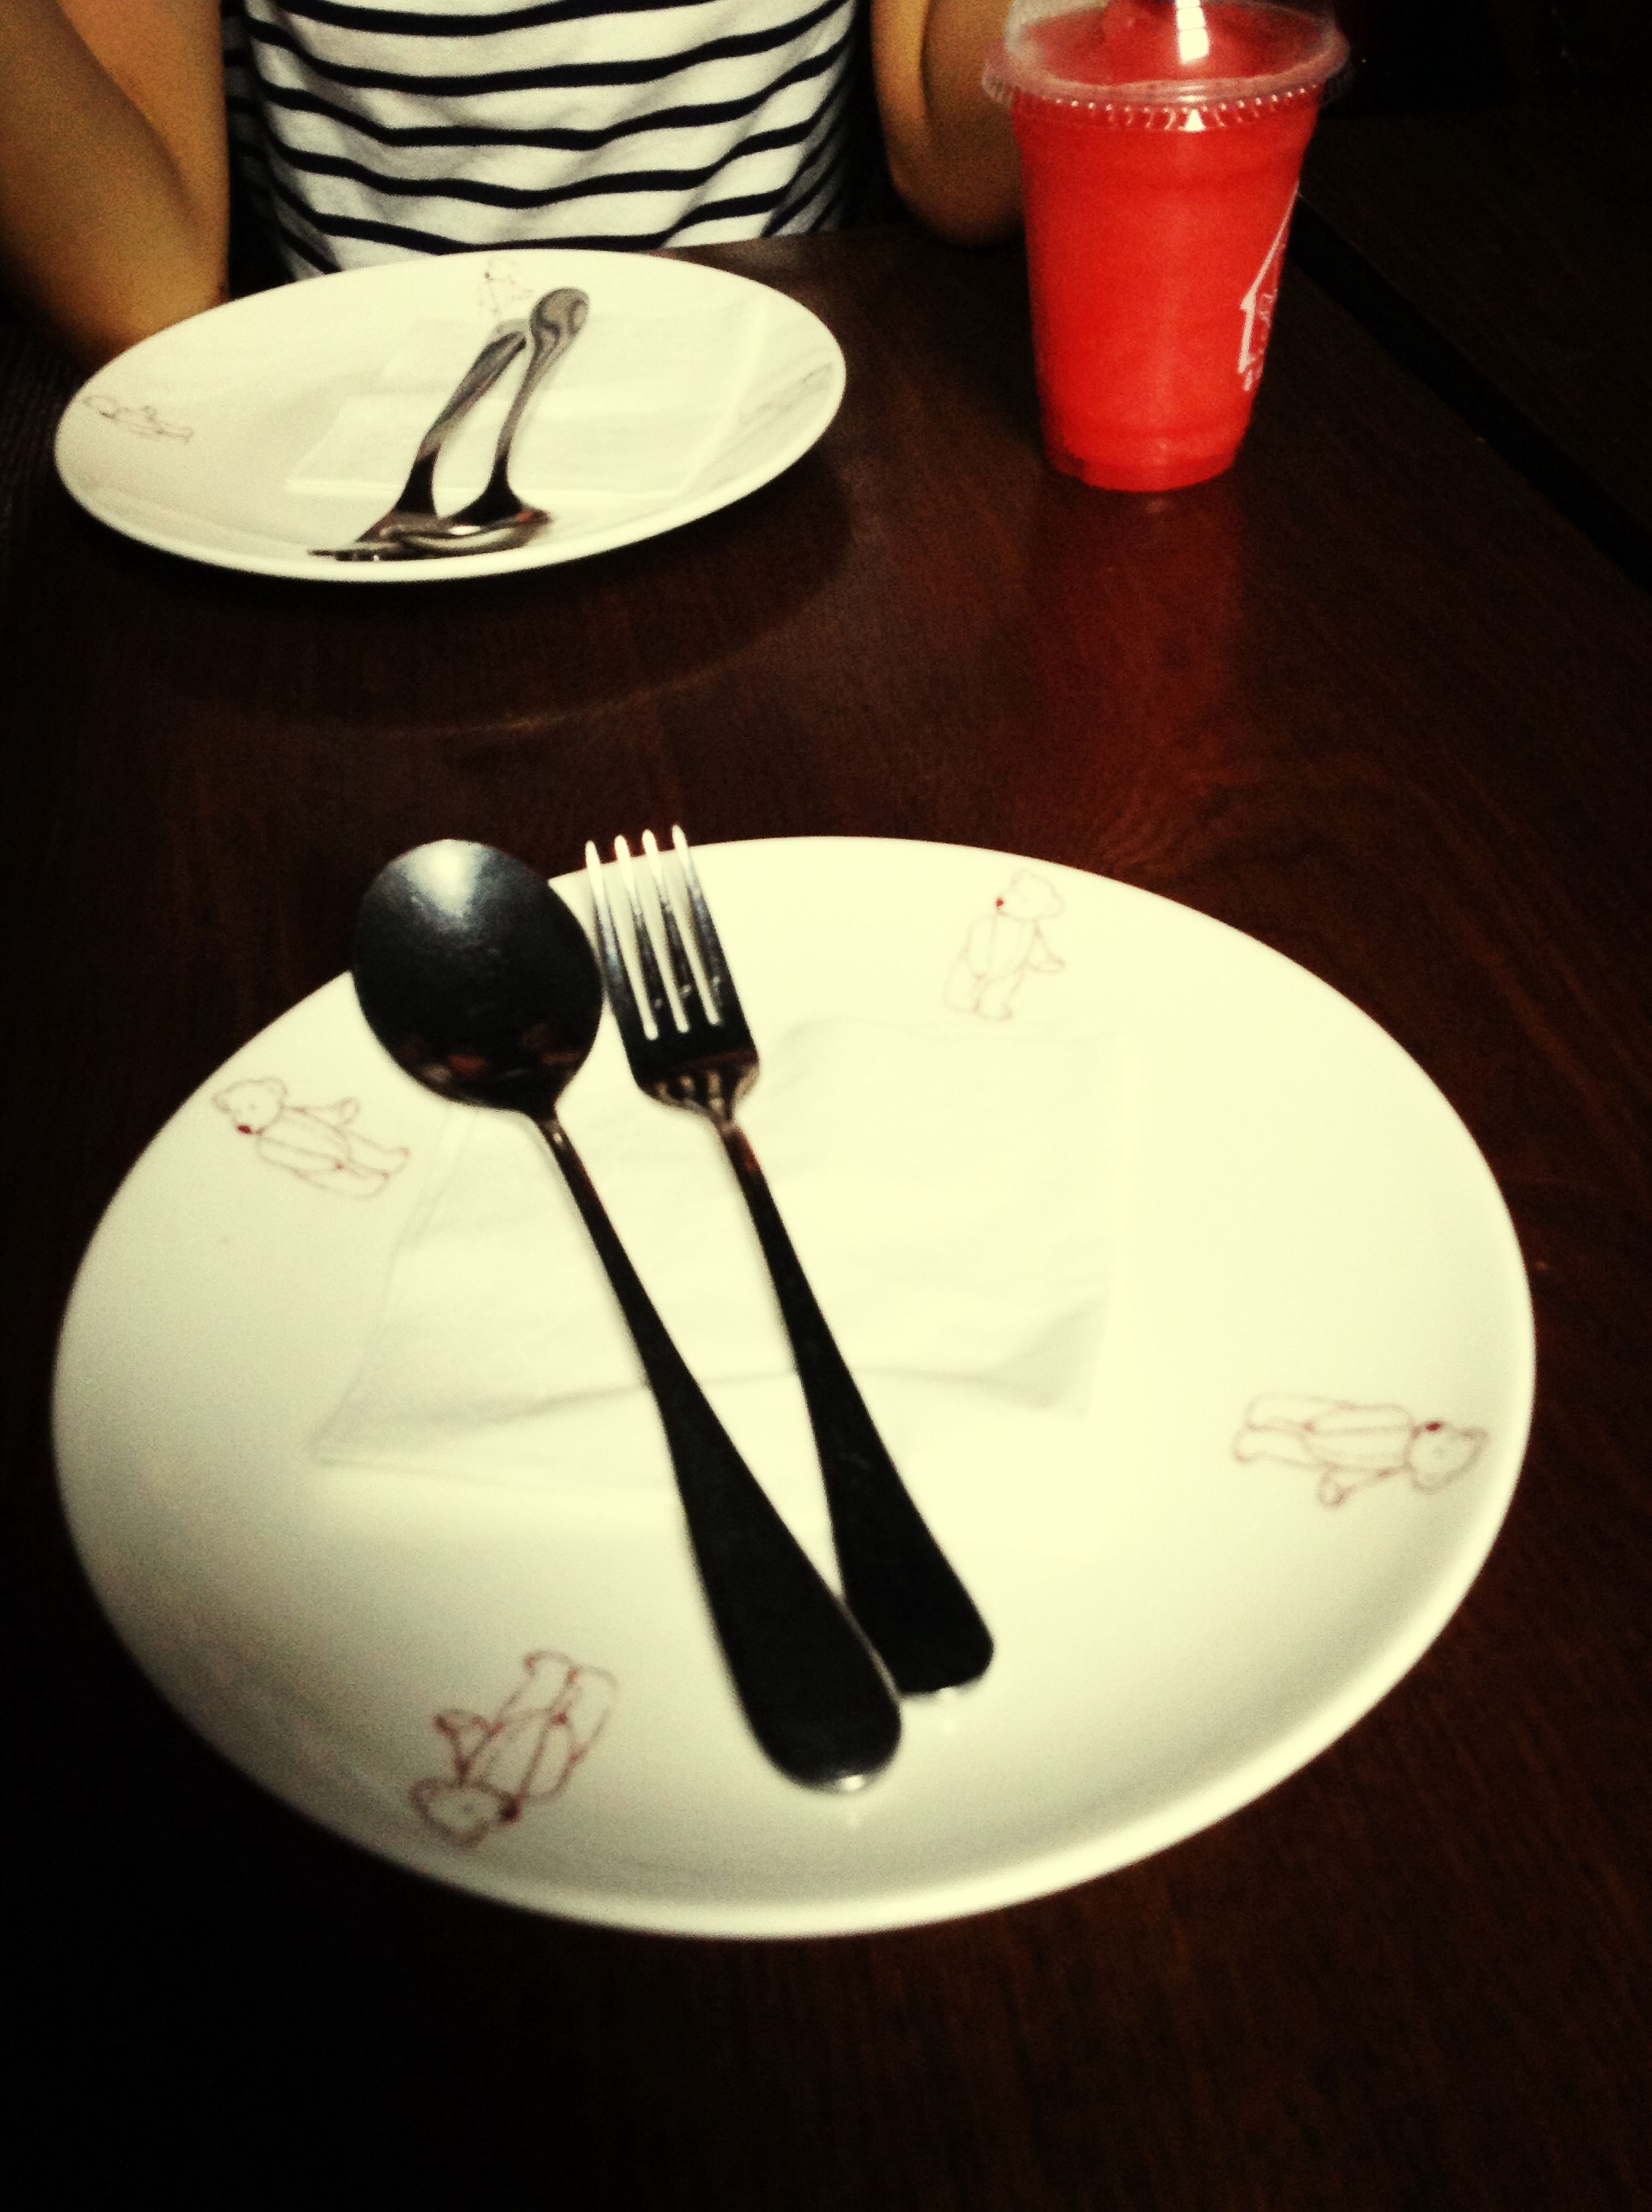 indoors, table, still life, food and drink, high angle view, spoon, drink, fork, plate, coffee cup, close-up, cup, refreshment, saucer, no people, table knife, coffee - drink, freshness, directly above, white color